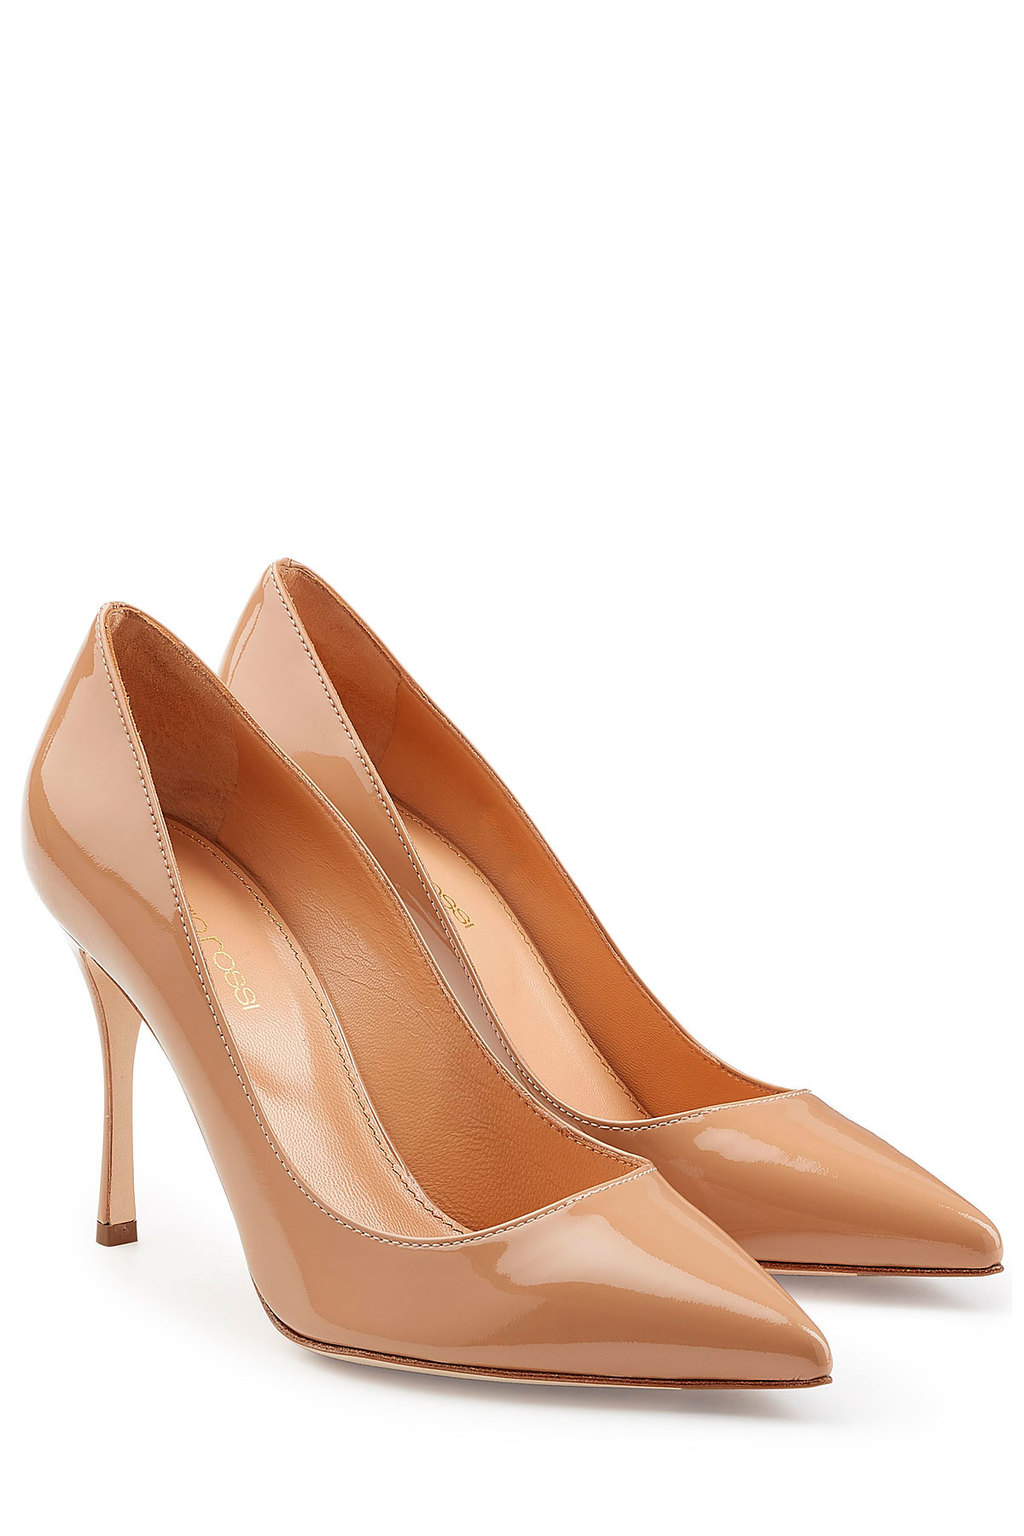 Patent Leather Pumps Beige - predominant colour: nude; occasions: evening, occasion, creative work; material: leather; heel: stiletto; toe: pointed toe; style: courts; finish: patent; pattern: plain; heel height: very high; season: a/w 2015; wardrobe: highlight